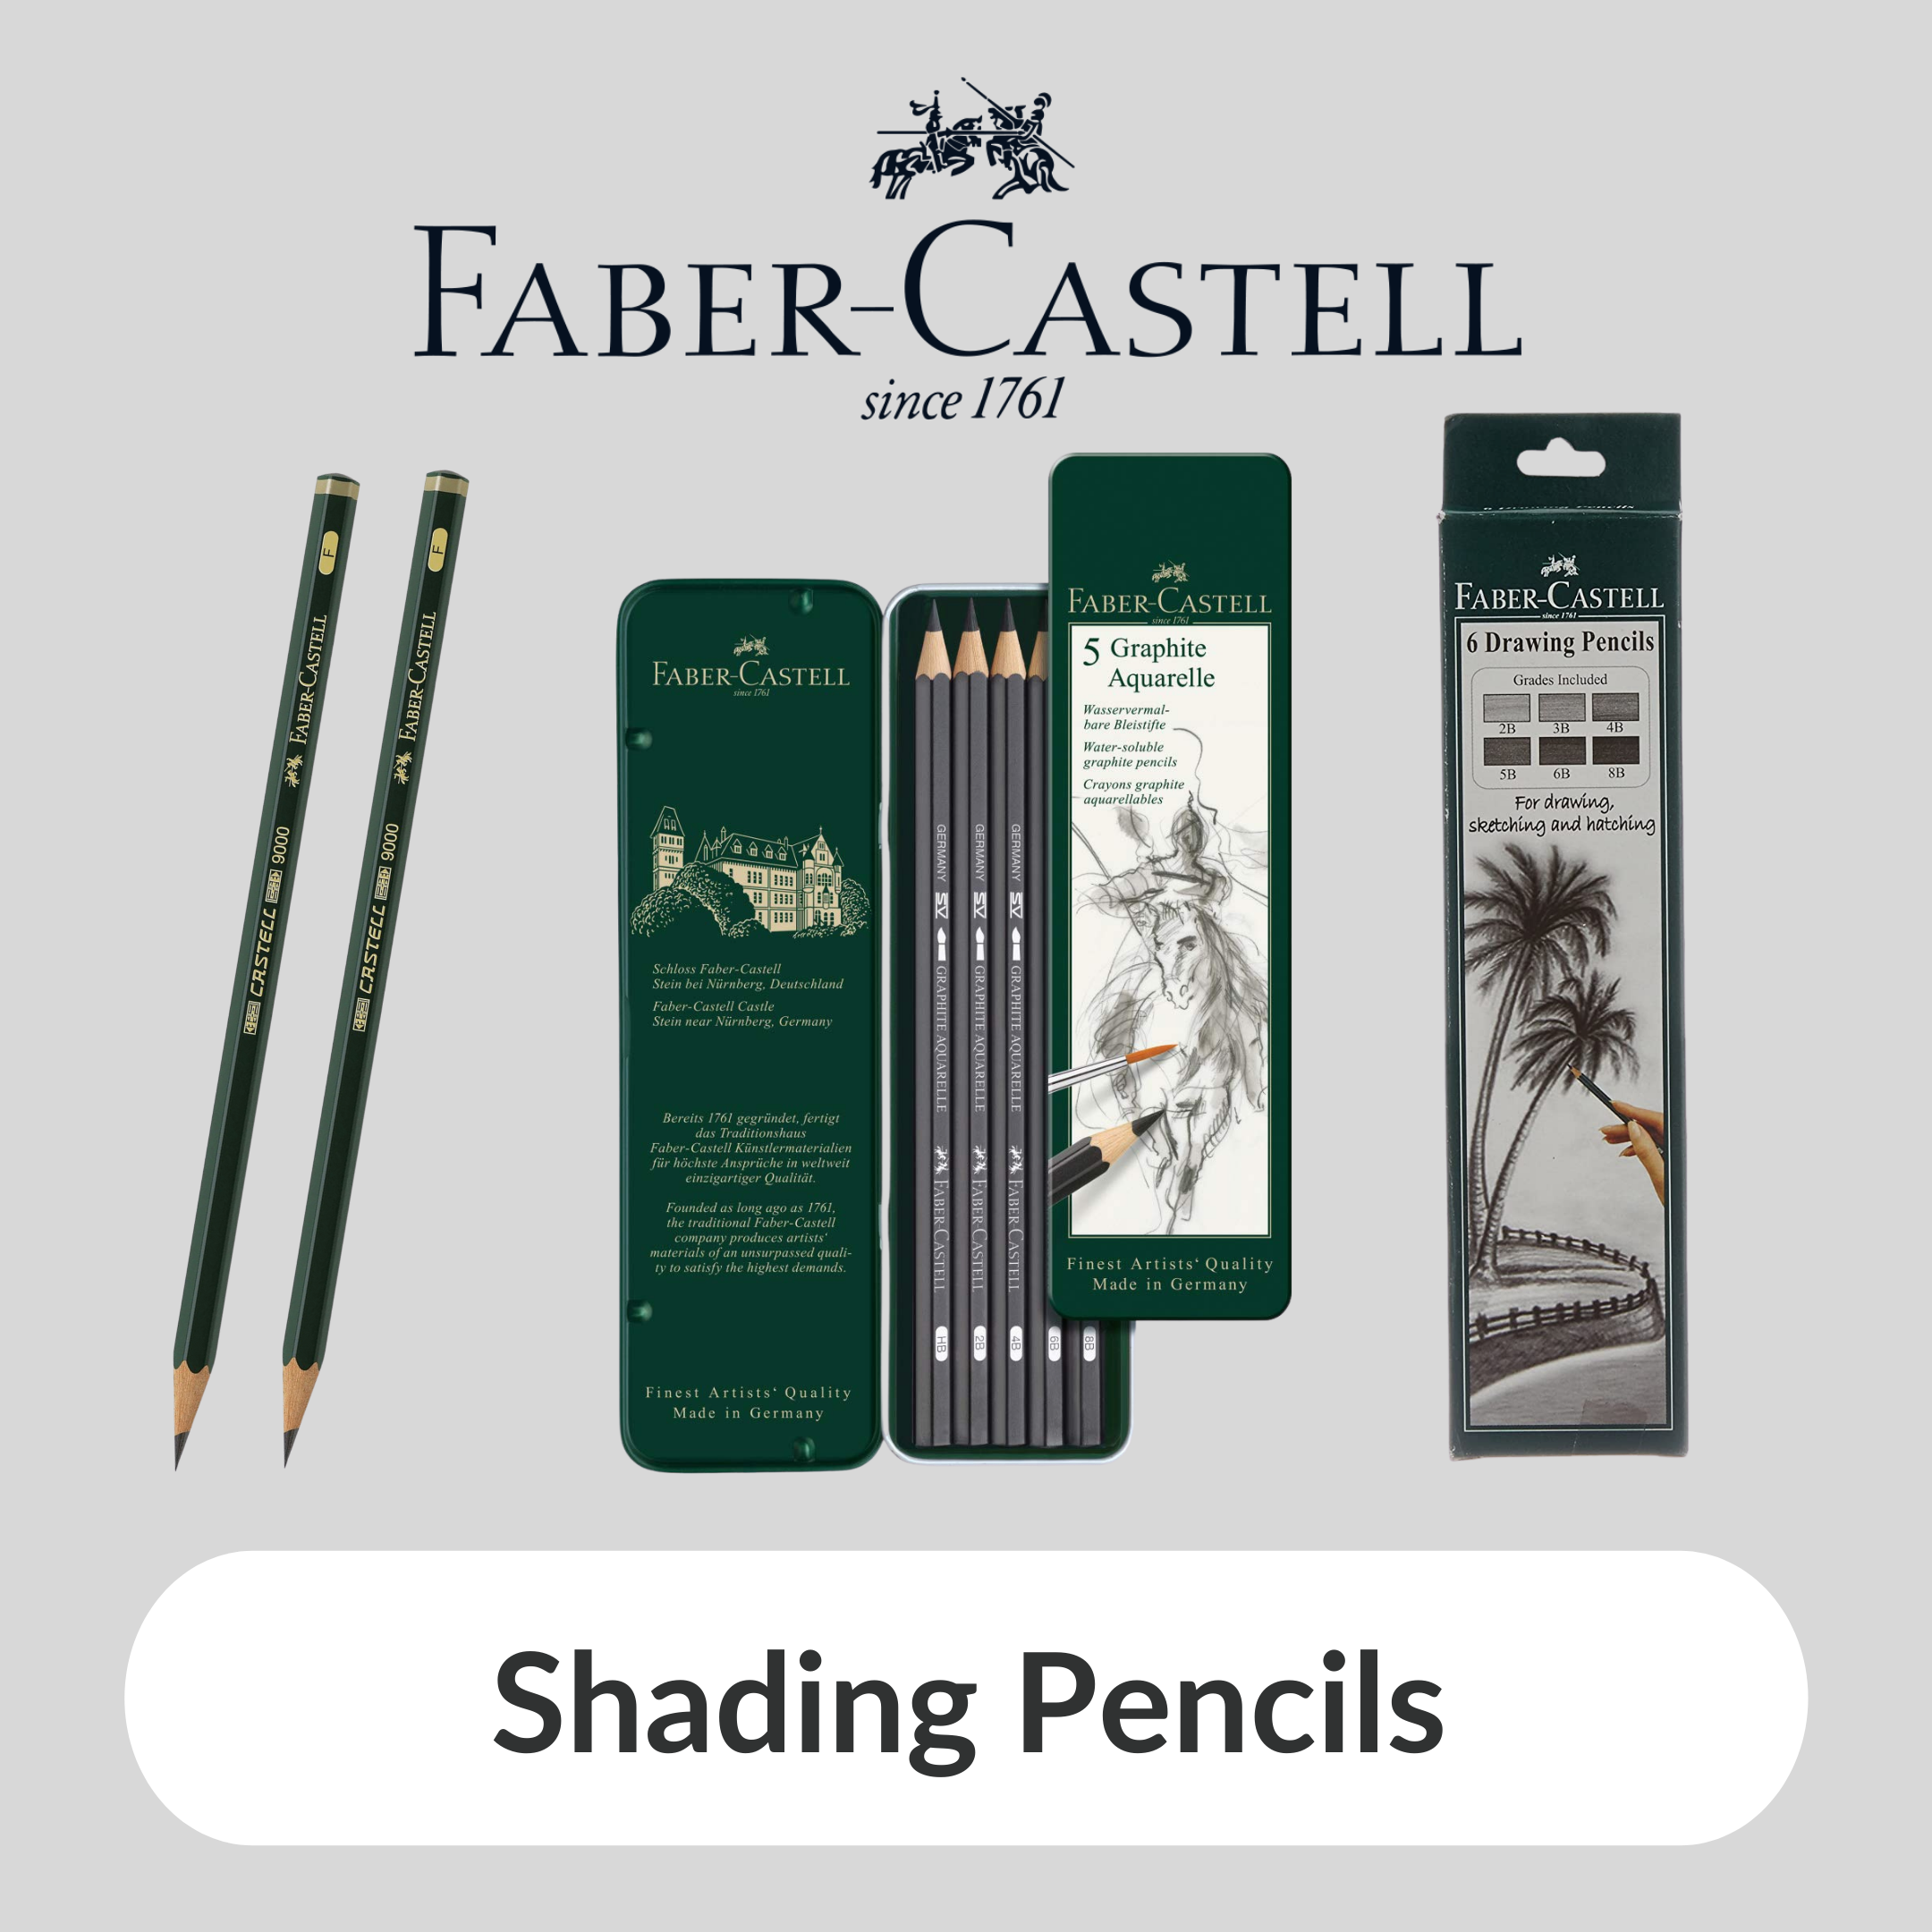 FaberCastell shading Pencils